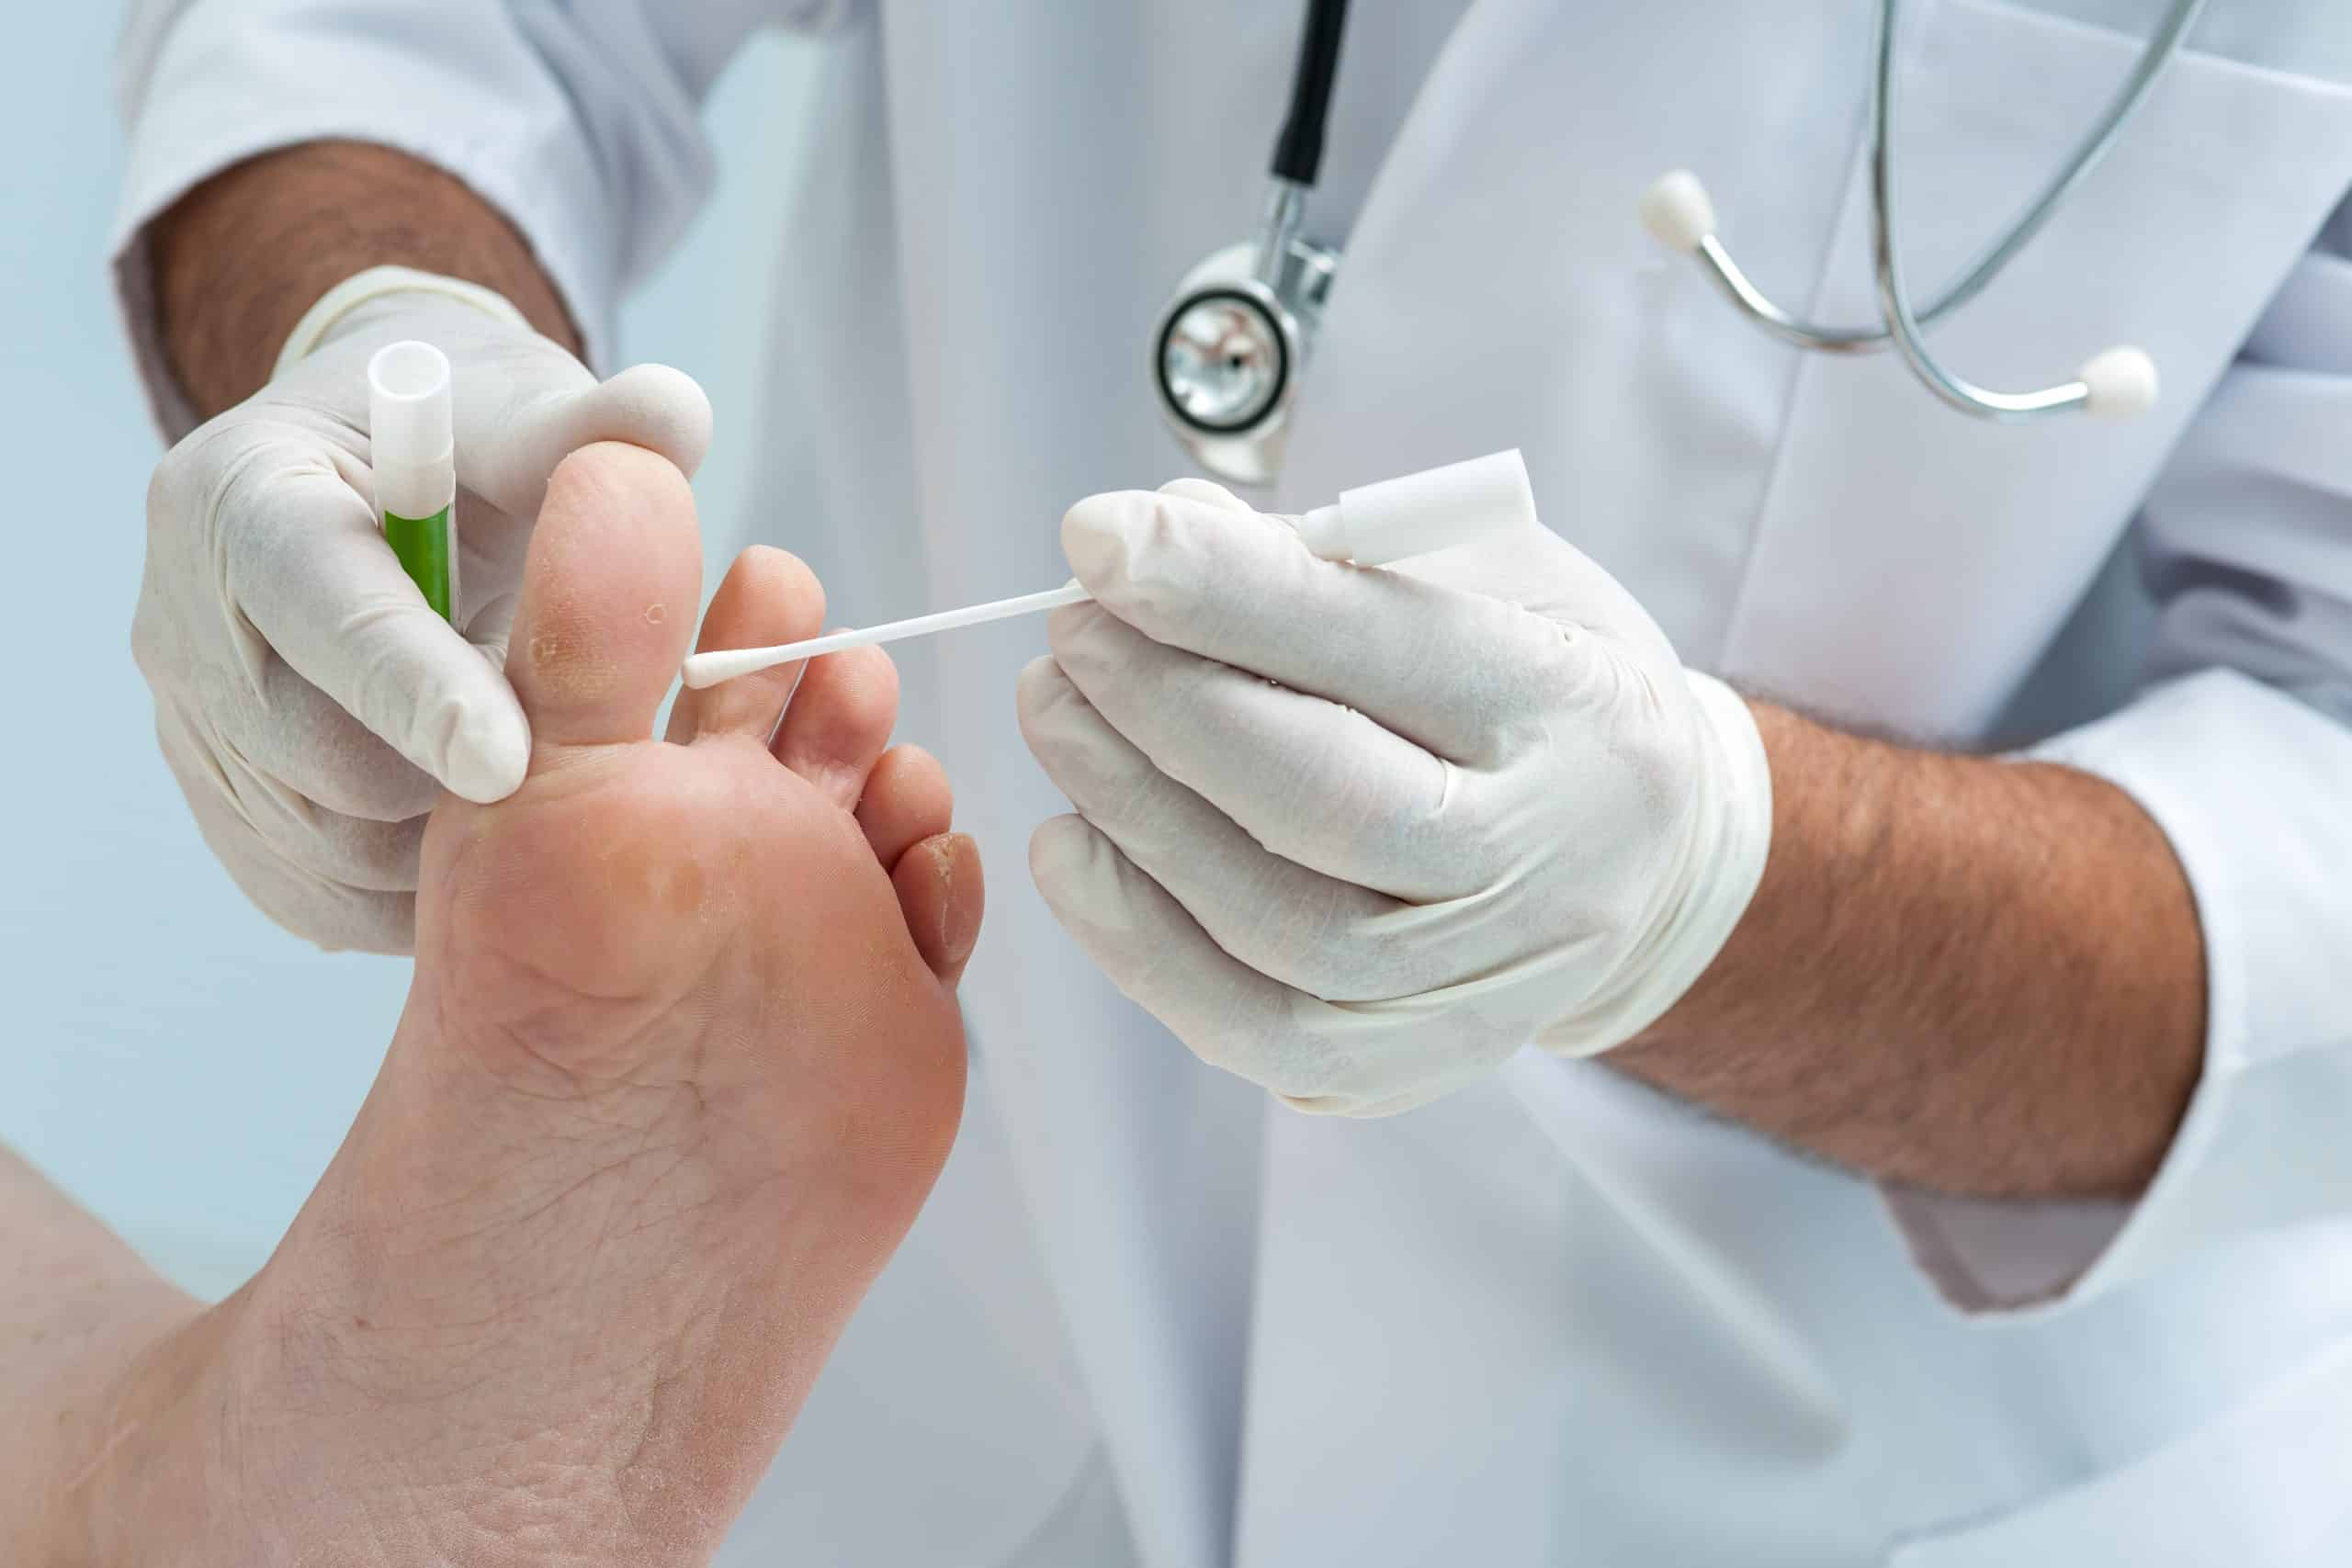 Worried you have a Fungal Nail Infection? See your GP or Podiatrist for a diagnosis.